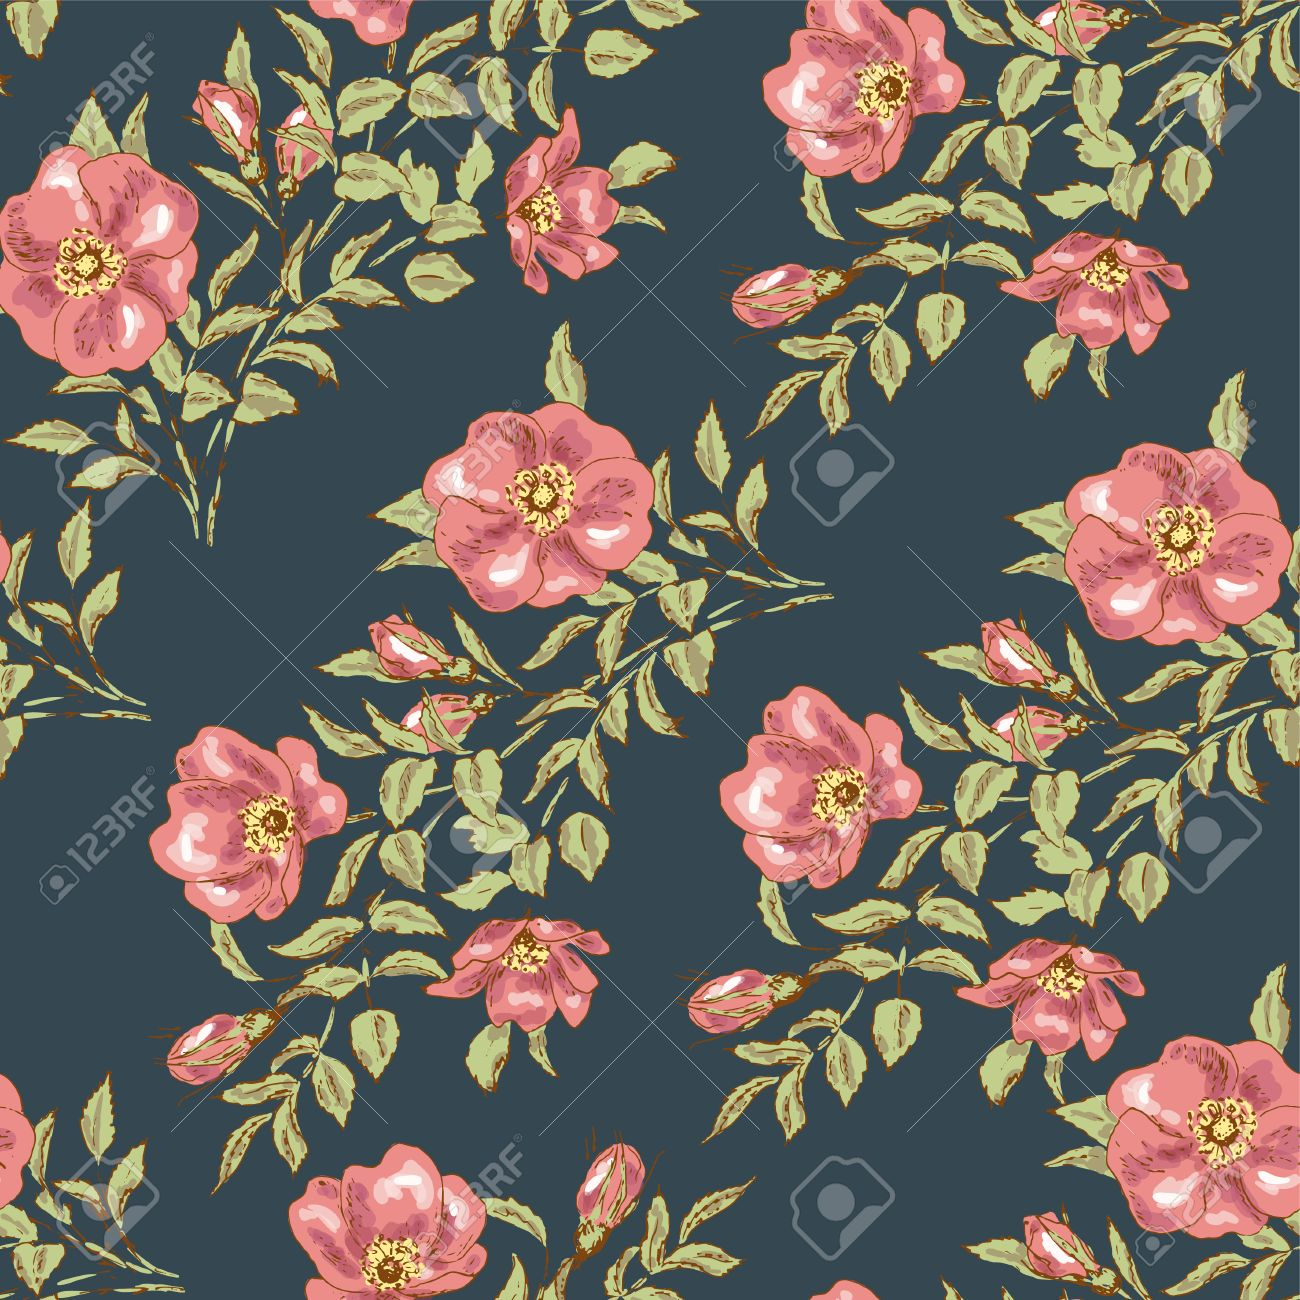 dog rose seamless pattern flower wallpaper vintage design with